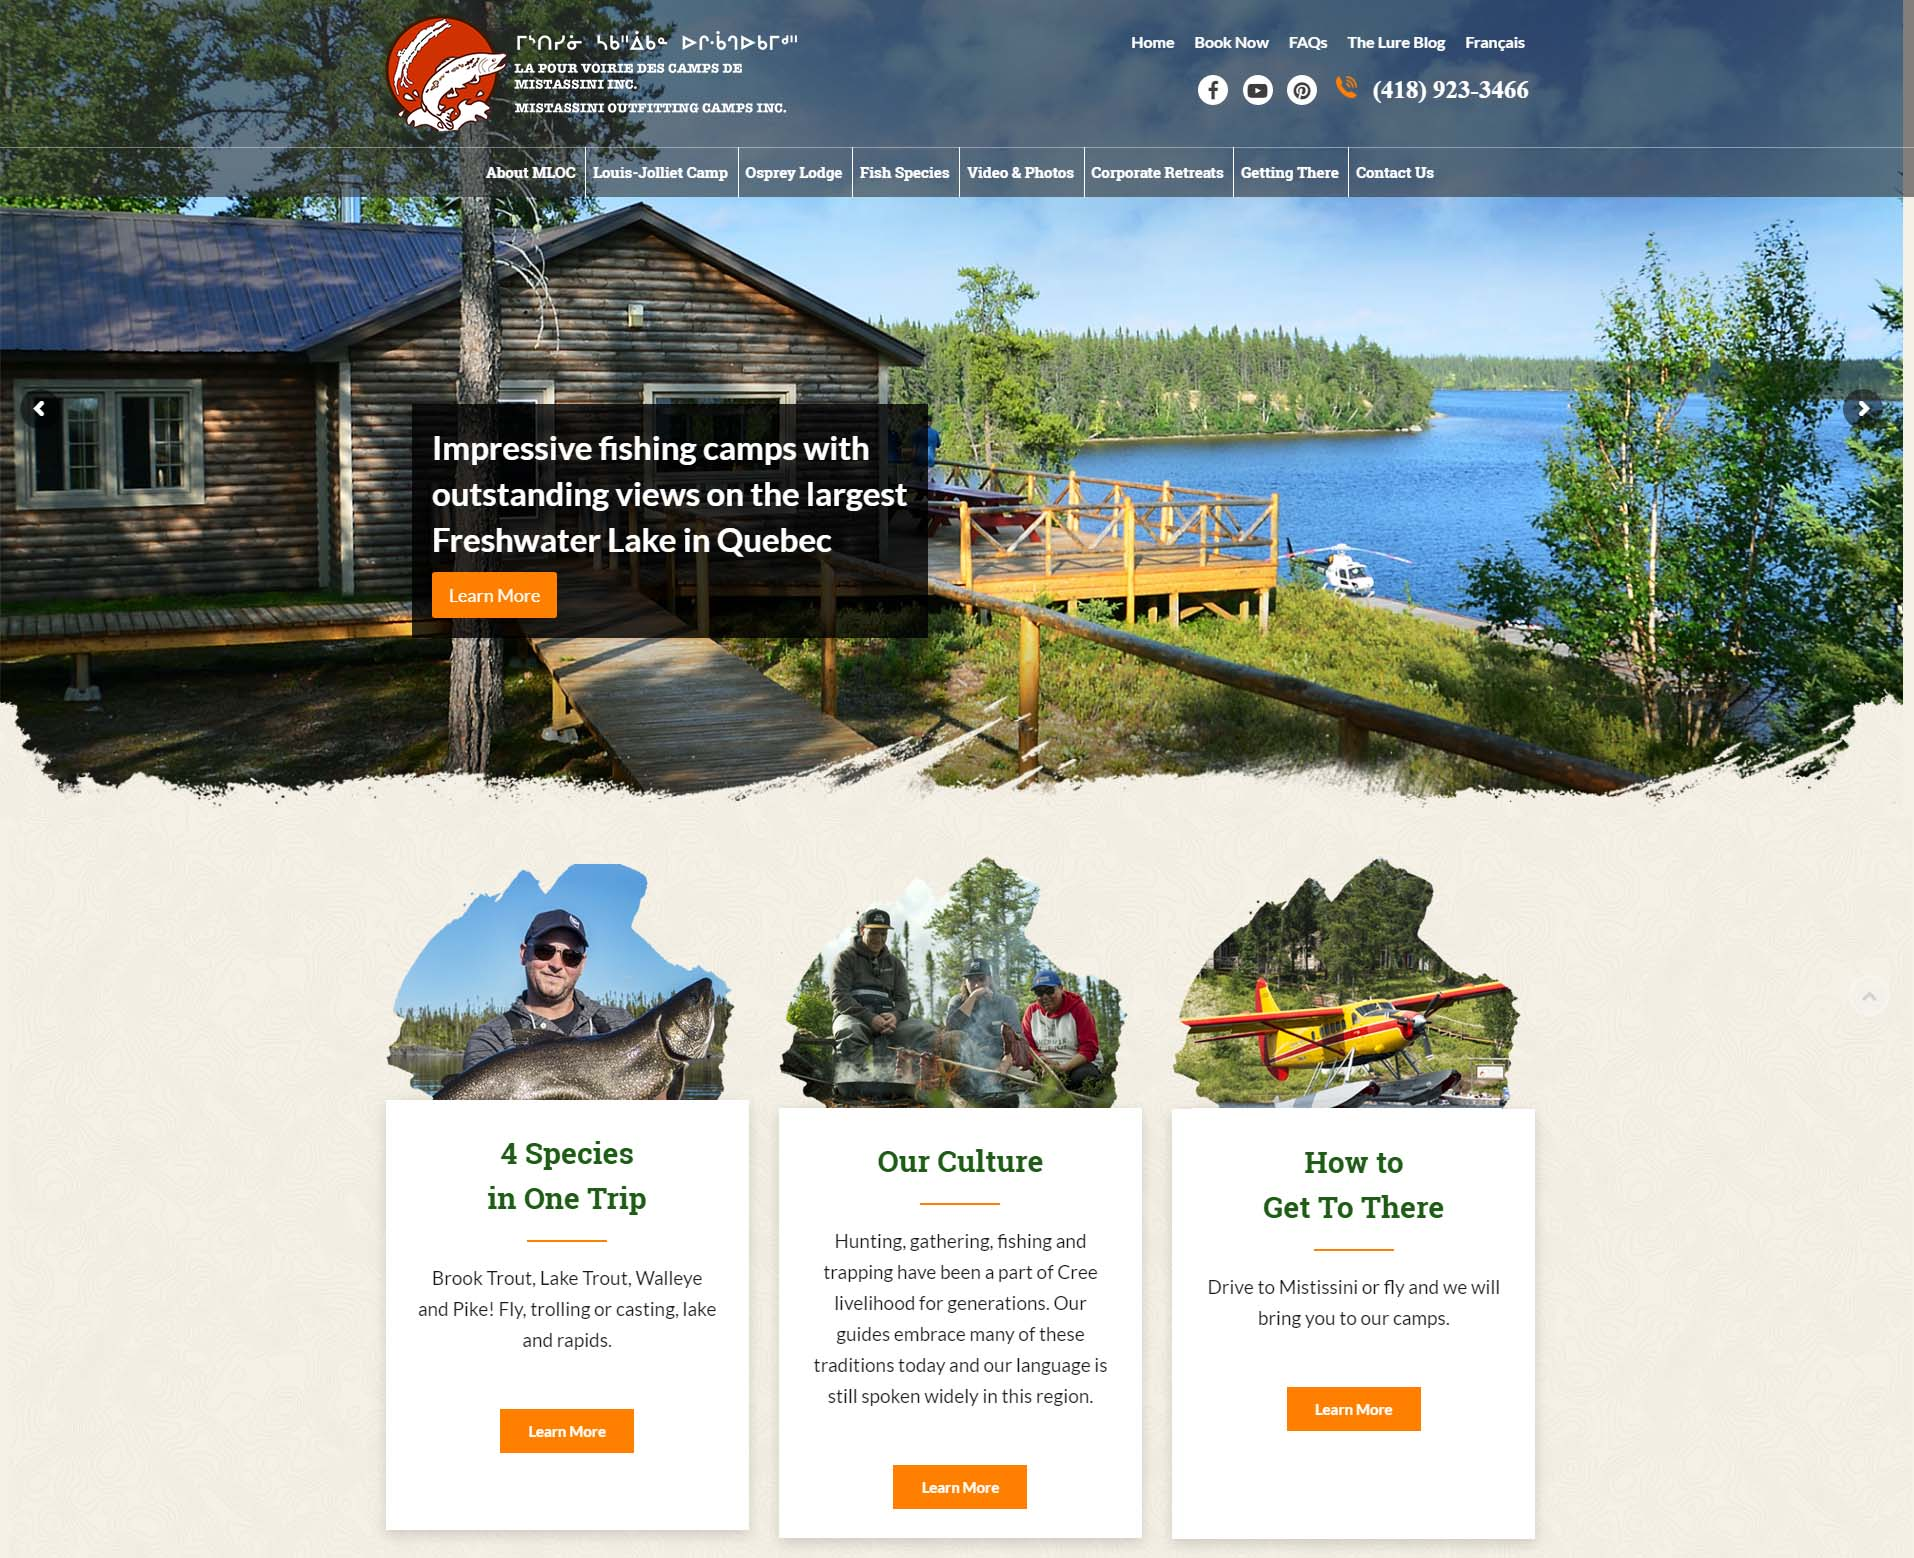 Great 2017 Season In The Books For Mistassini Outfitting Camps Inc., Launching 2018 Season With A New Website.